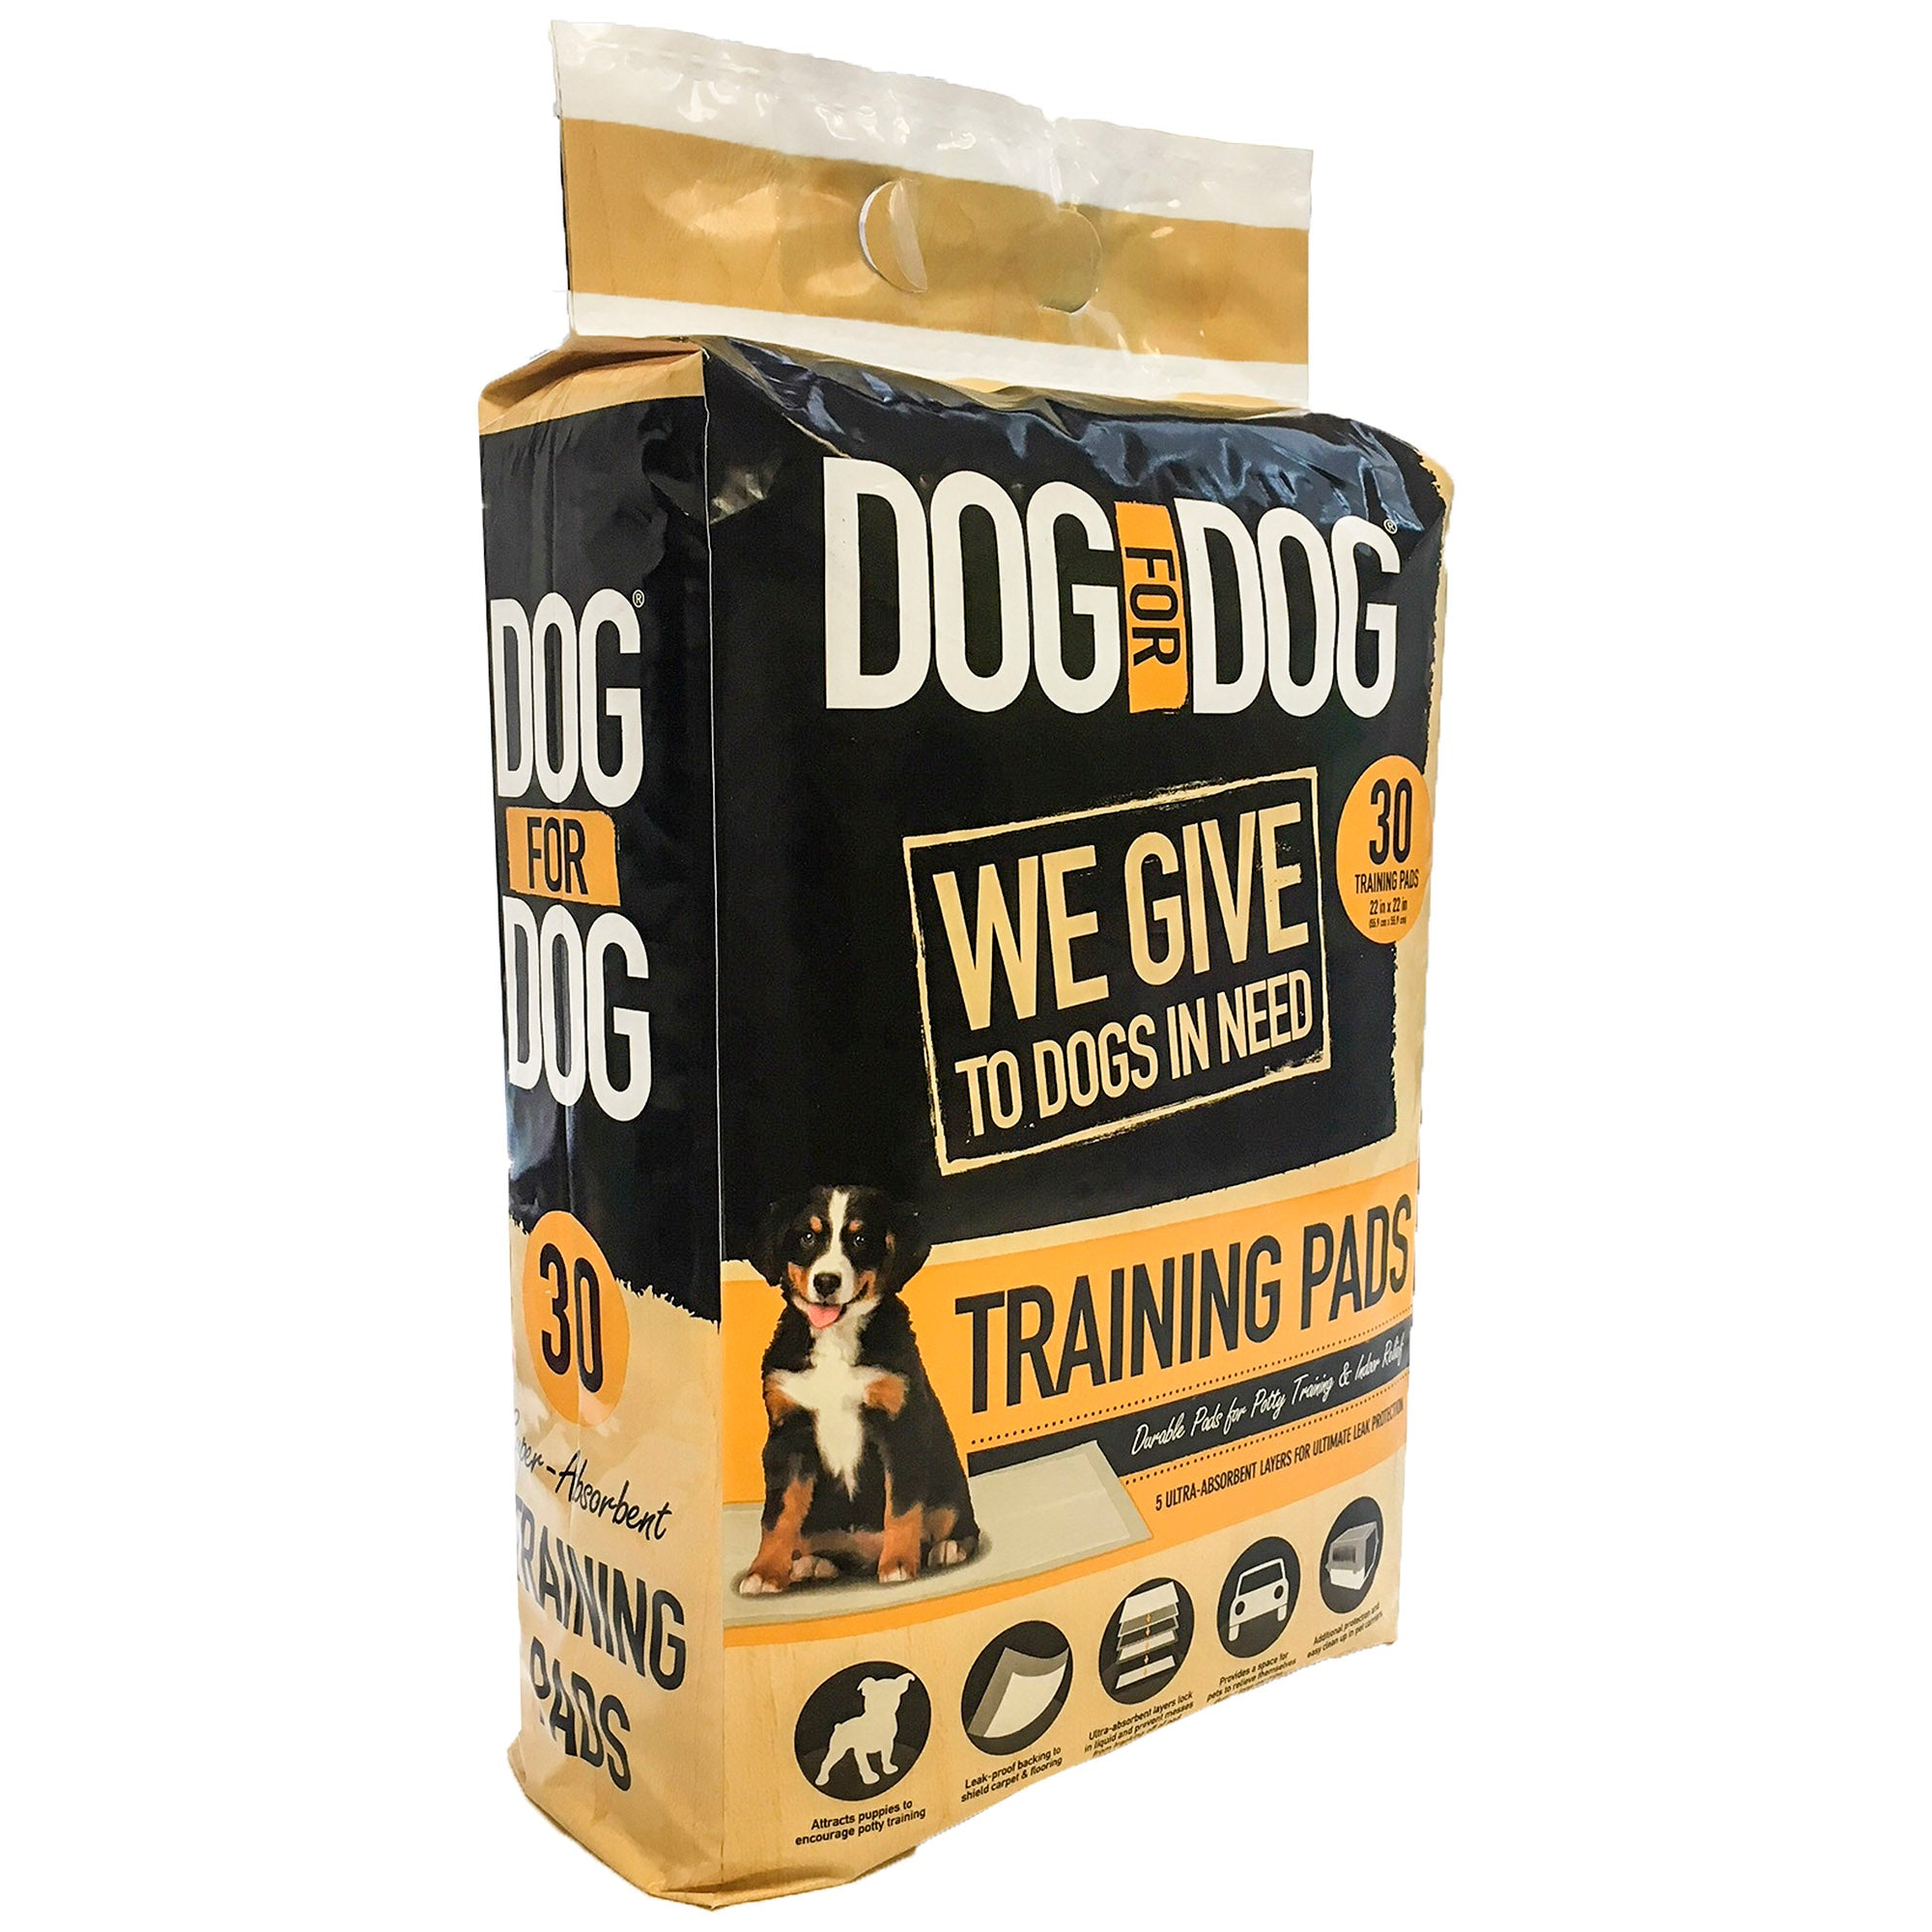 Dog for Dog Training Pads